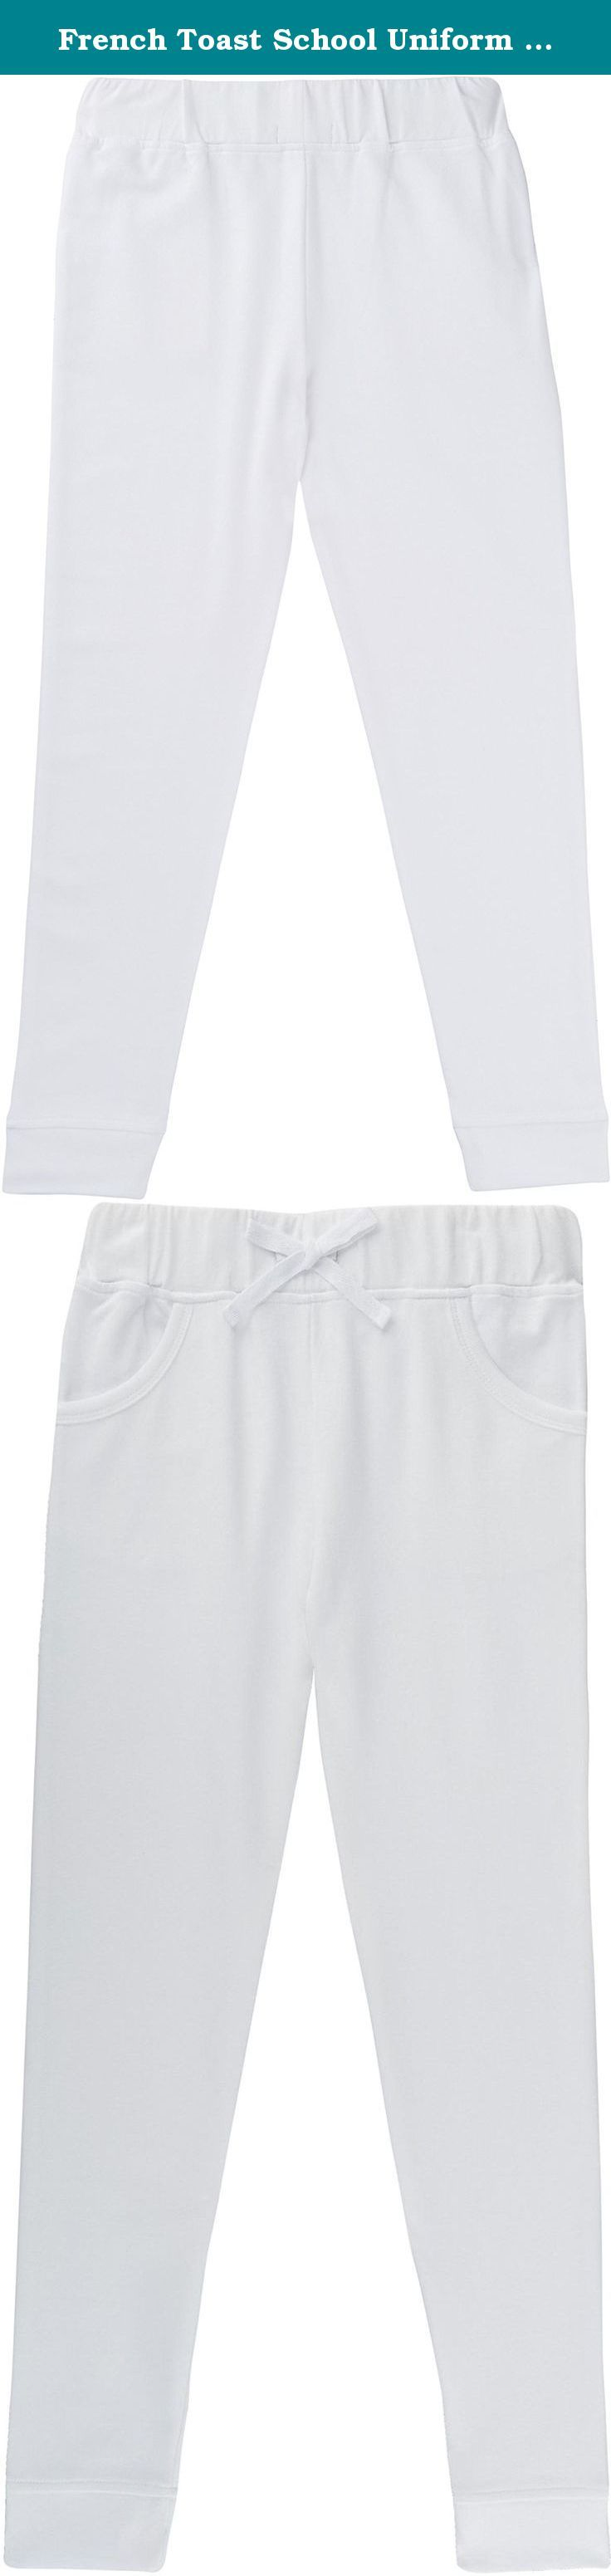 French Toast School Uniform Girls French Terry Jogger Pants, White, 6X. 60% Cotton, 40% Polyester. . Machine Wash. Cotton blend French terry. Elastic waistband with mock bow drawstring. Rib finish on cuffs and pockets.